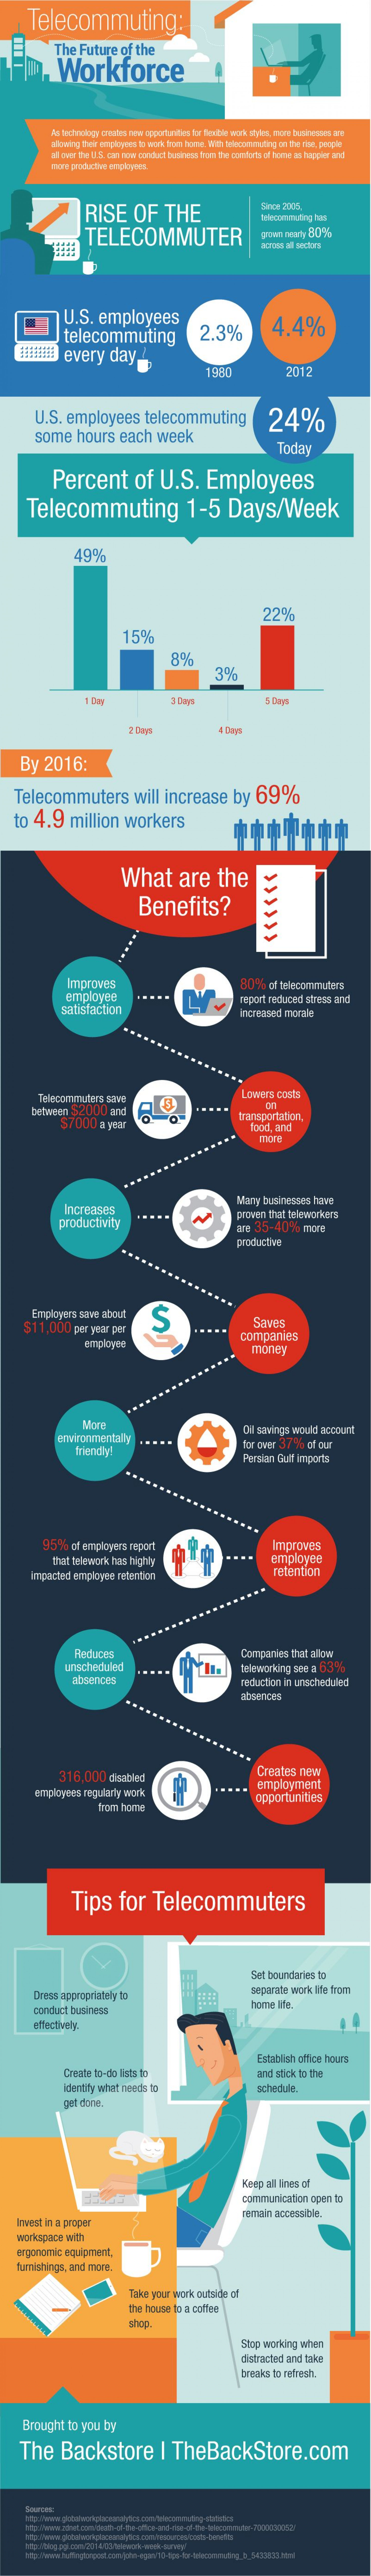 telecommuting the future of the workforce visual ly telecommuting the future of the workforce infographic